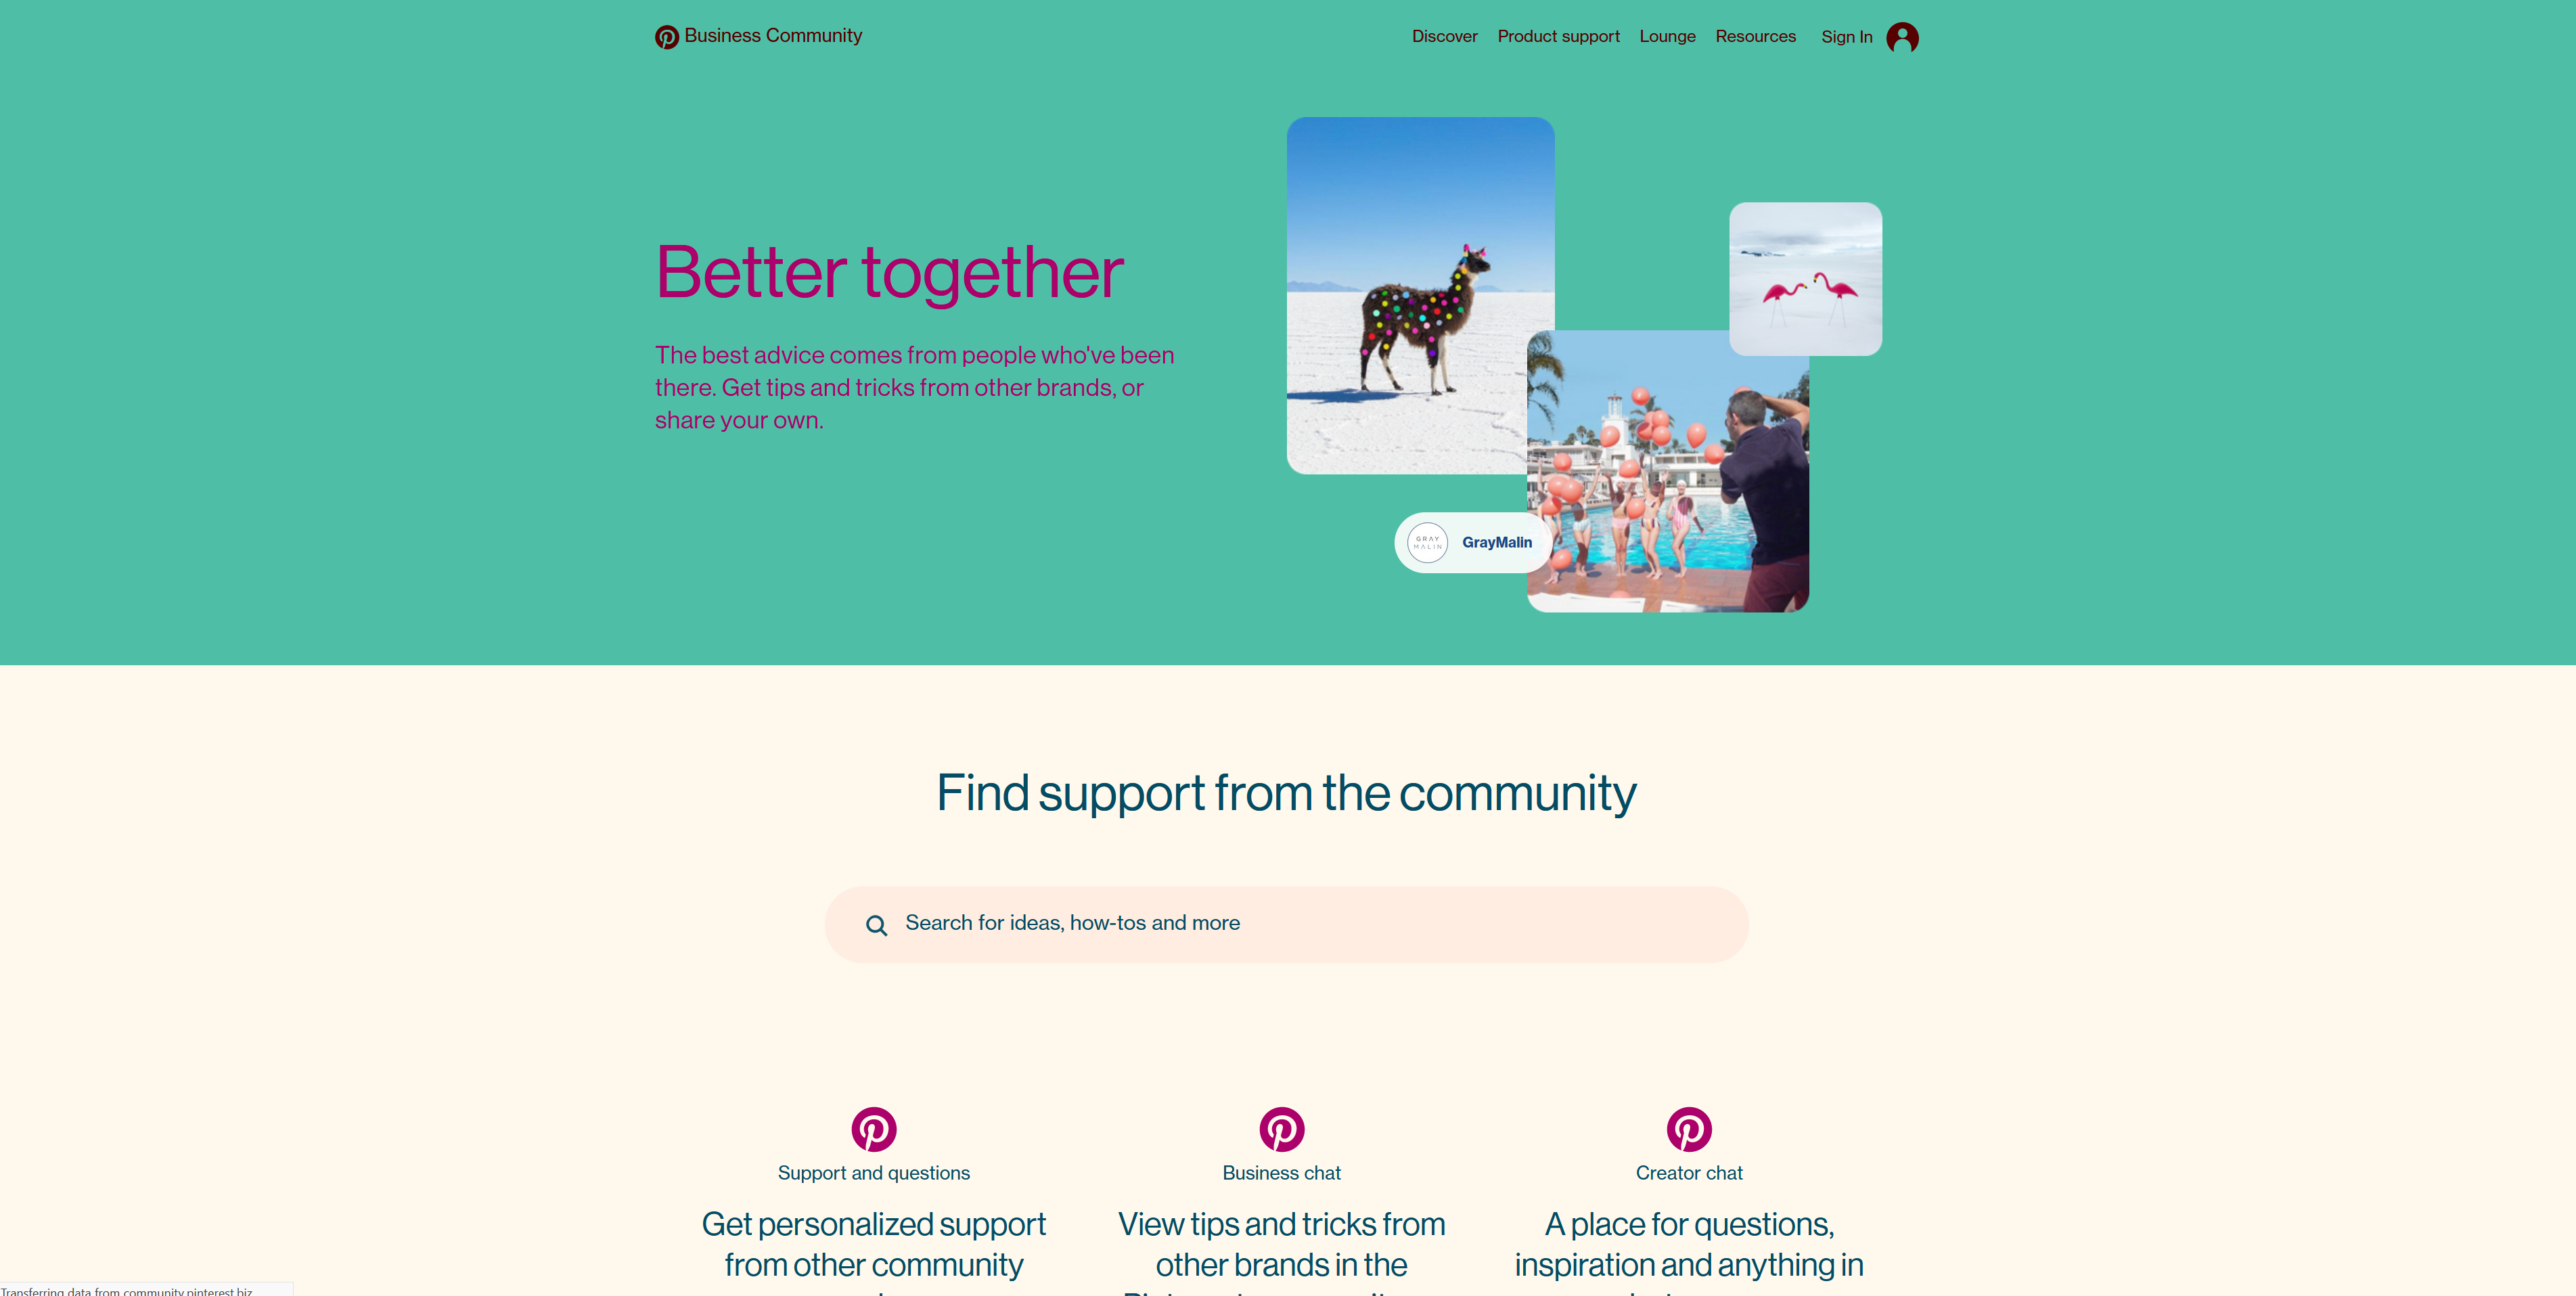 pinterest community - Get the Most Out of the Pinterest Community